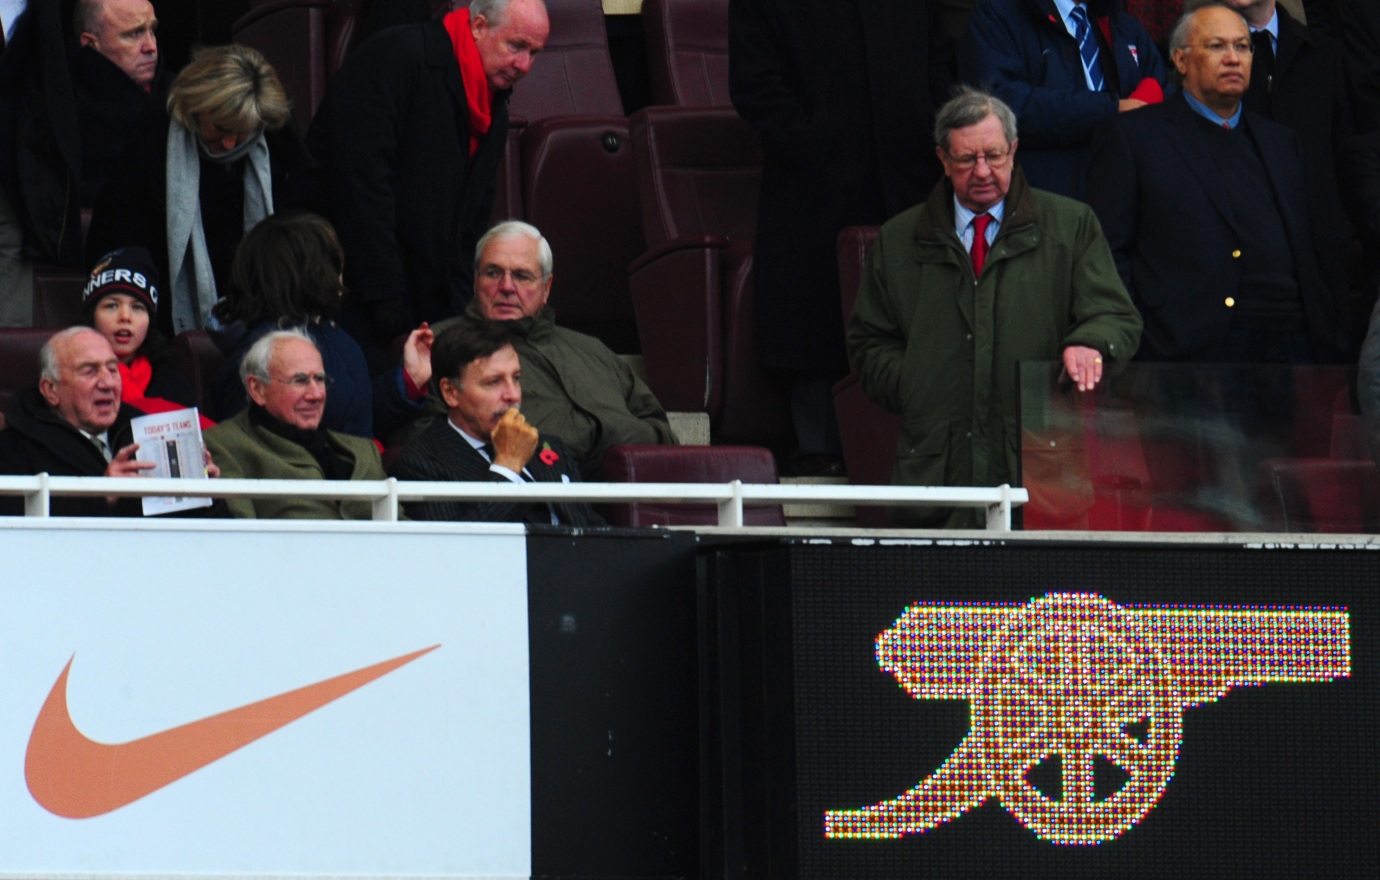 Arsenal majority shareholder Stan Kroenke in his seat as Chairman Peter Hill Wood walks down to occupy his seat. Kroenke was not in his seat for the second half